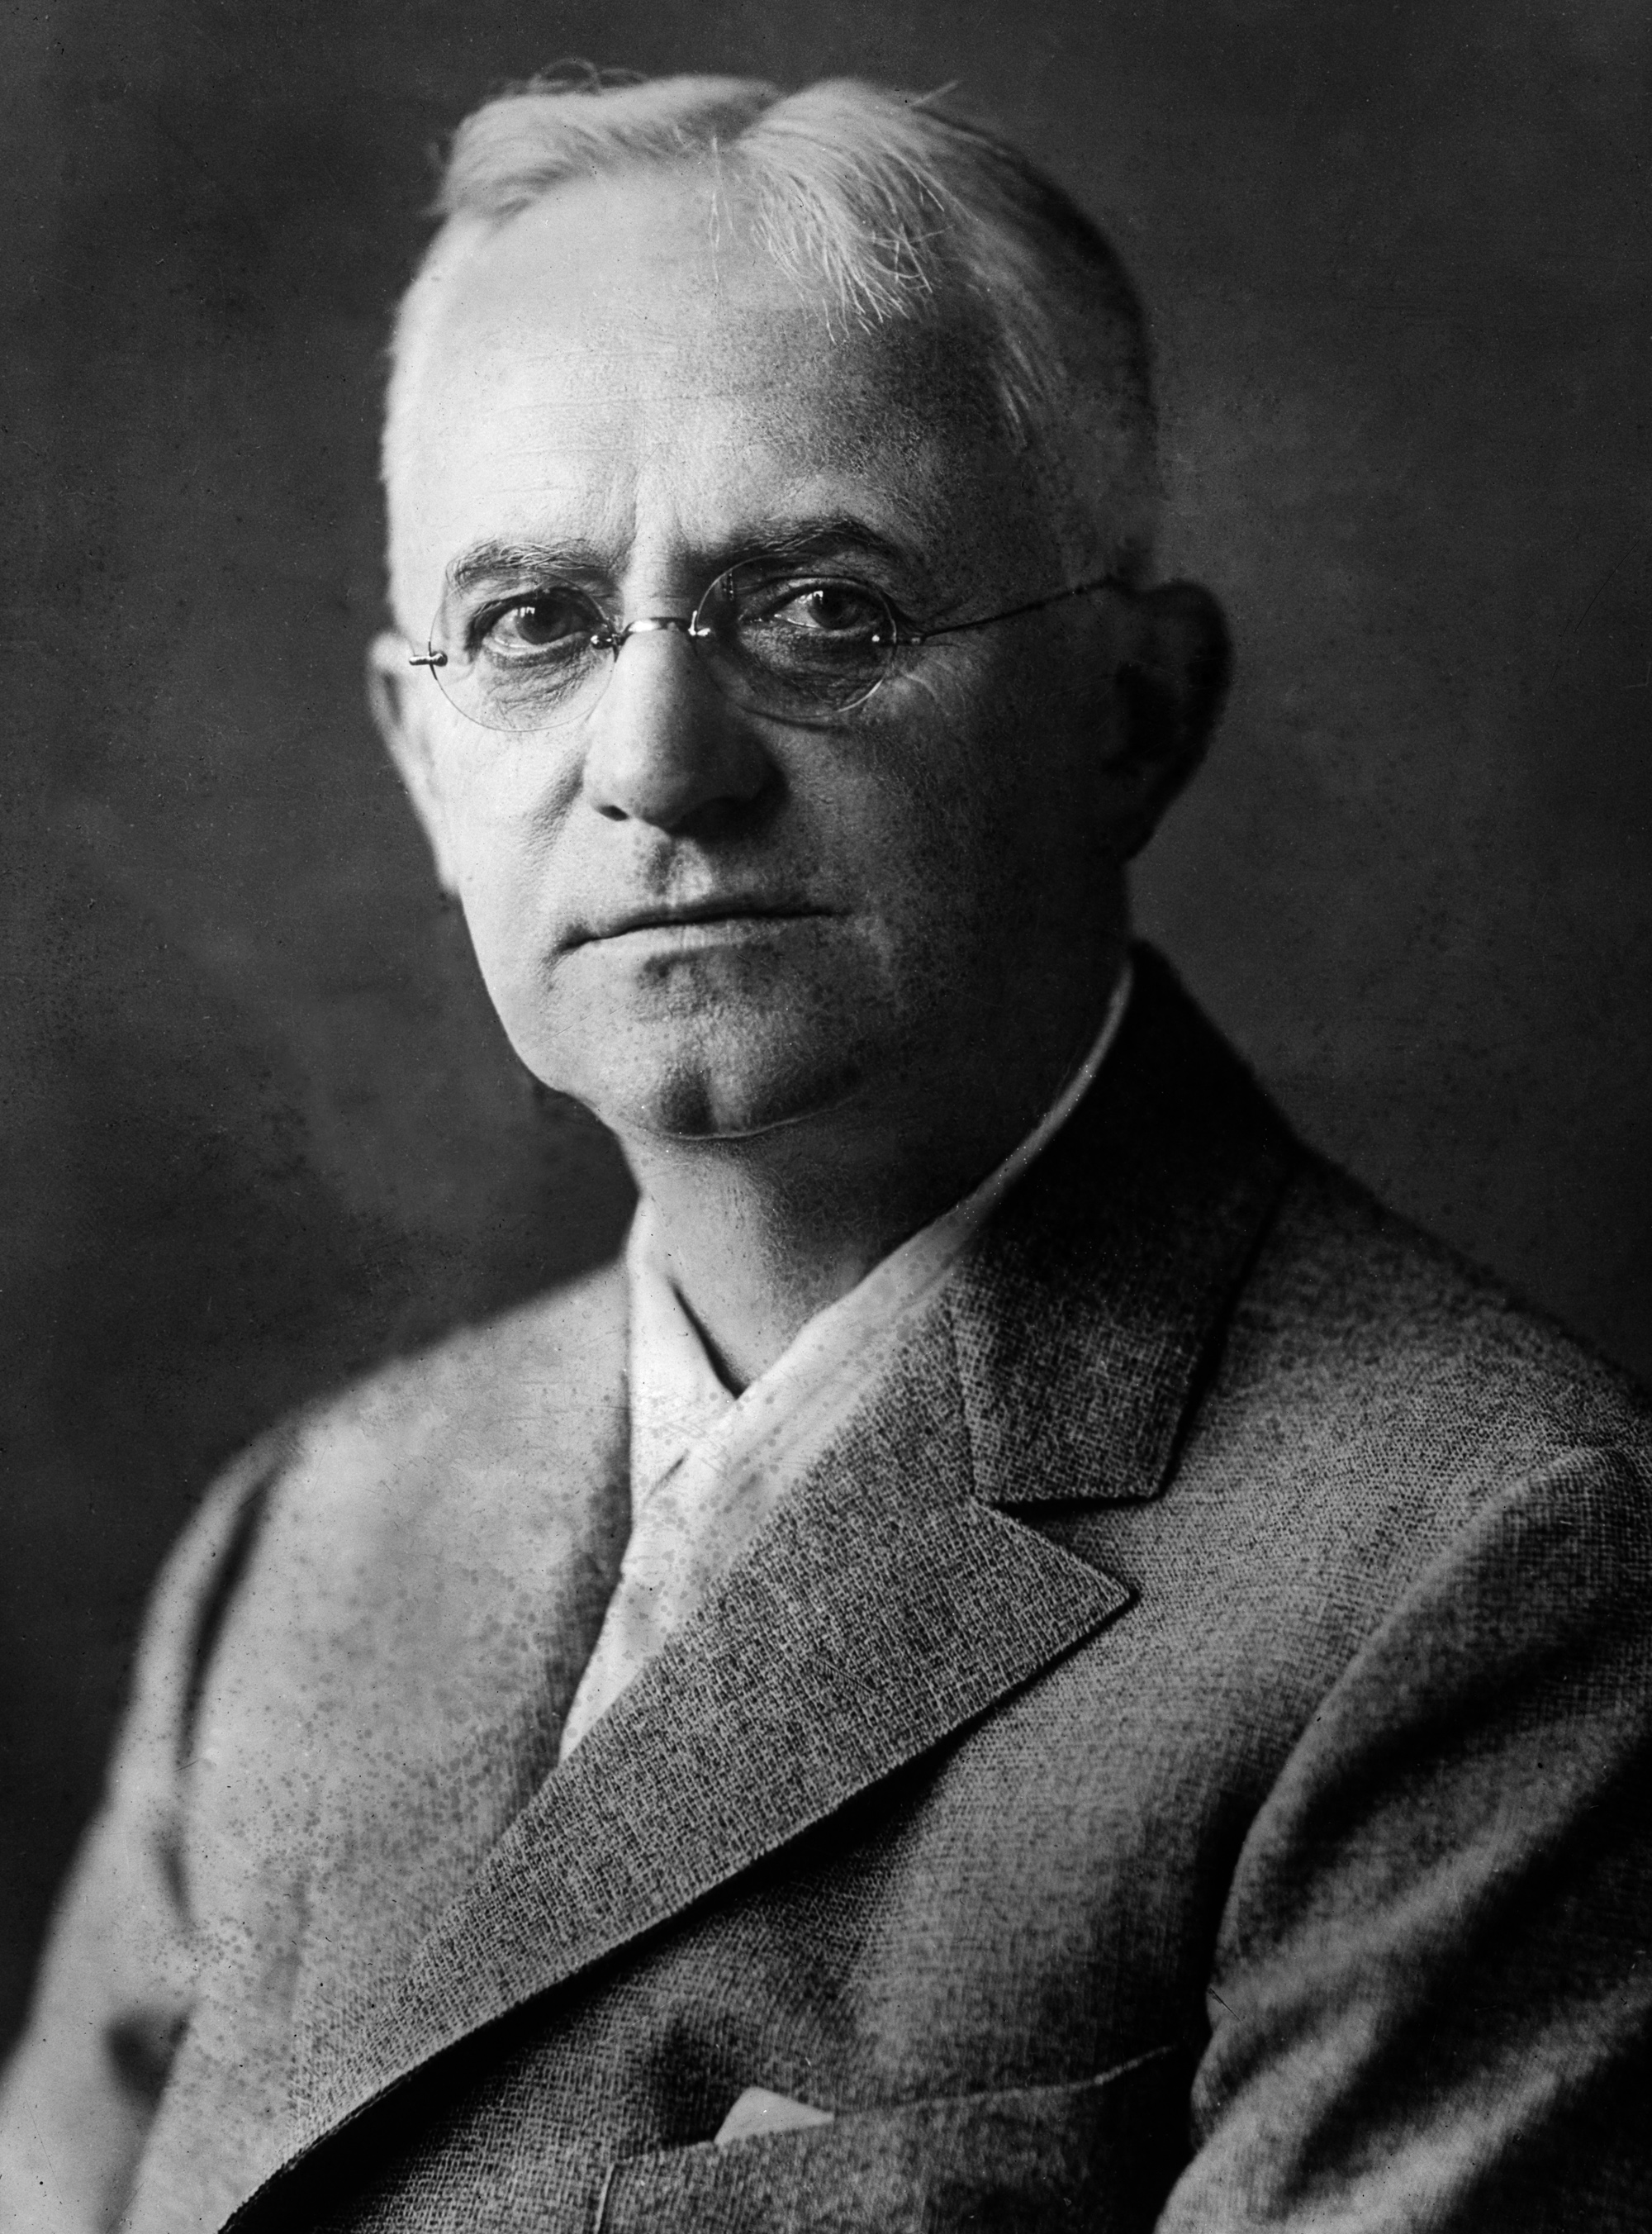 Image of George Eastman from Wikidata